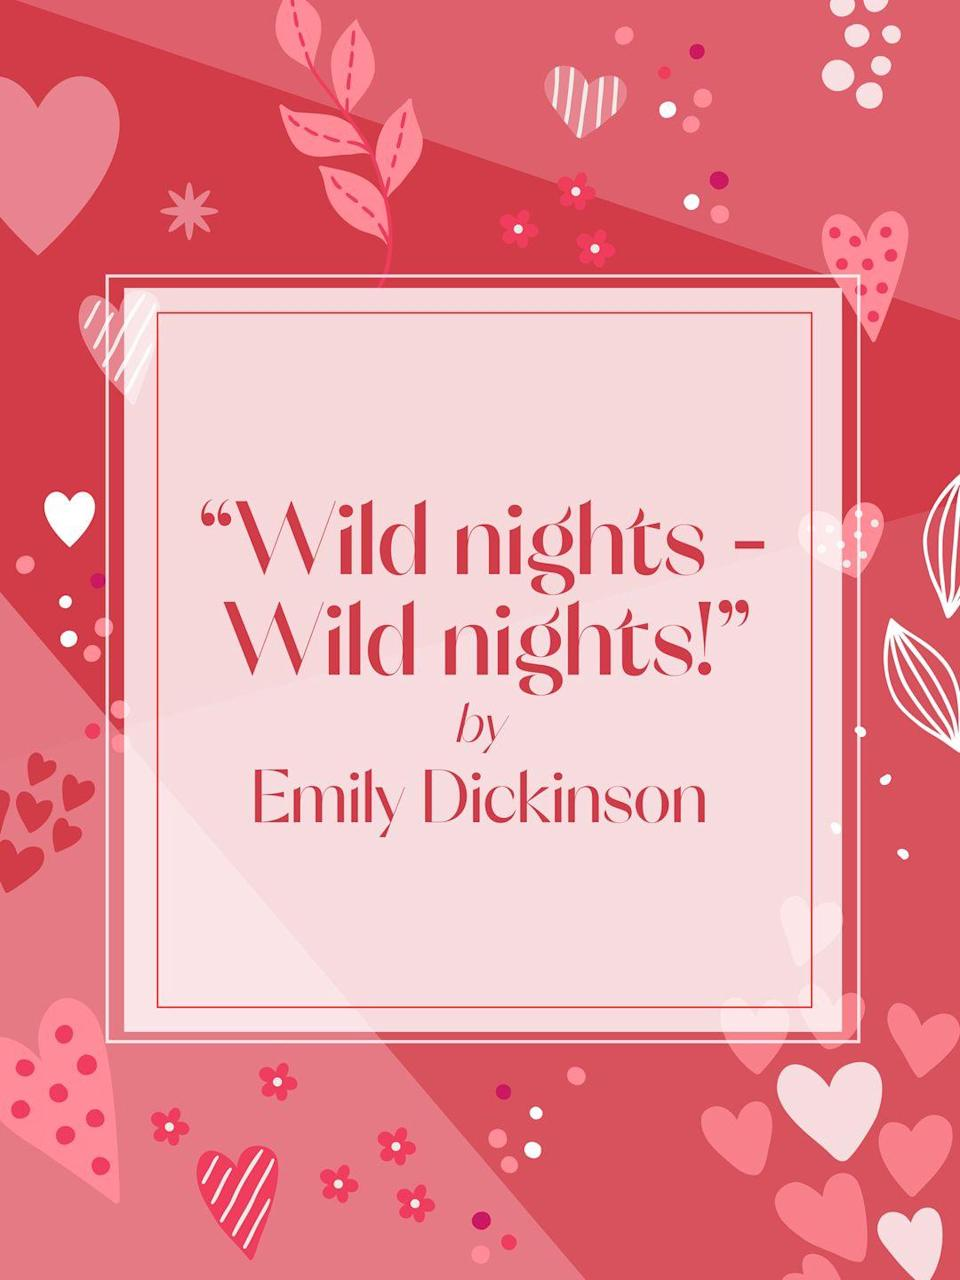 """<p>Wild nights - Wild nights!<br>Were I with thee<br>Wild nights should be<br>Our luxury!</p><p>Futile - the winds -<br>To a Heart in port -<br>Done with the Compass -<br>Done with the Chart!</p><p>Rowing in Eden -<br>Ah - the Sea!<br>Might I but moor - tonight -<br>In thee!</p><p><strong>Read more poetry by Emily Dickinson in <em><a href=""""https://www.amazon.com/Complete-Poems-Emily-Dickinson/dp/0316184136"""" rel=""""nofollow noopener"""" target=""""_blank"""" data-ylk=""""slk:The Complete Poems of Emily Dickinson"""" class=""""link rapid-noclick-resp"""">The Complete Poems of Emily Dickinson</a>.</em> </strong></p>"""